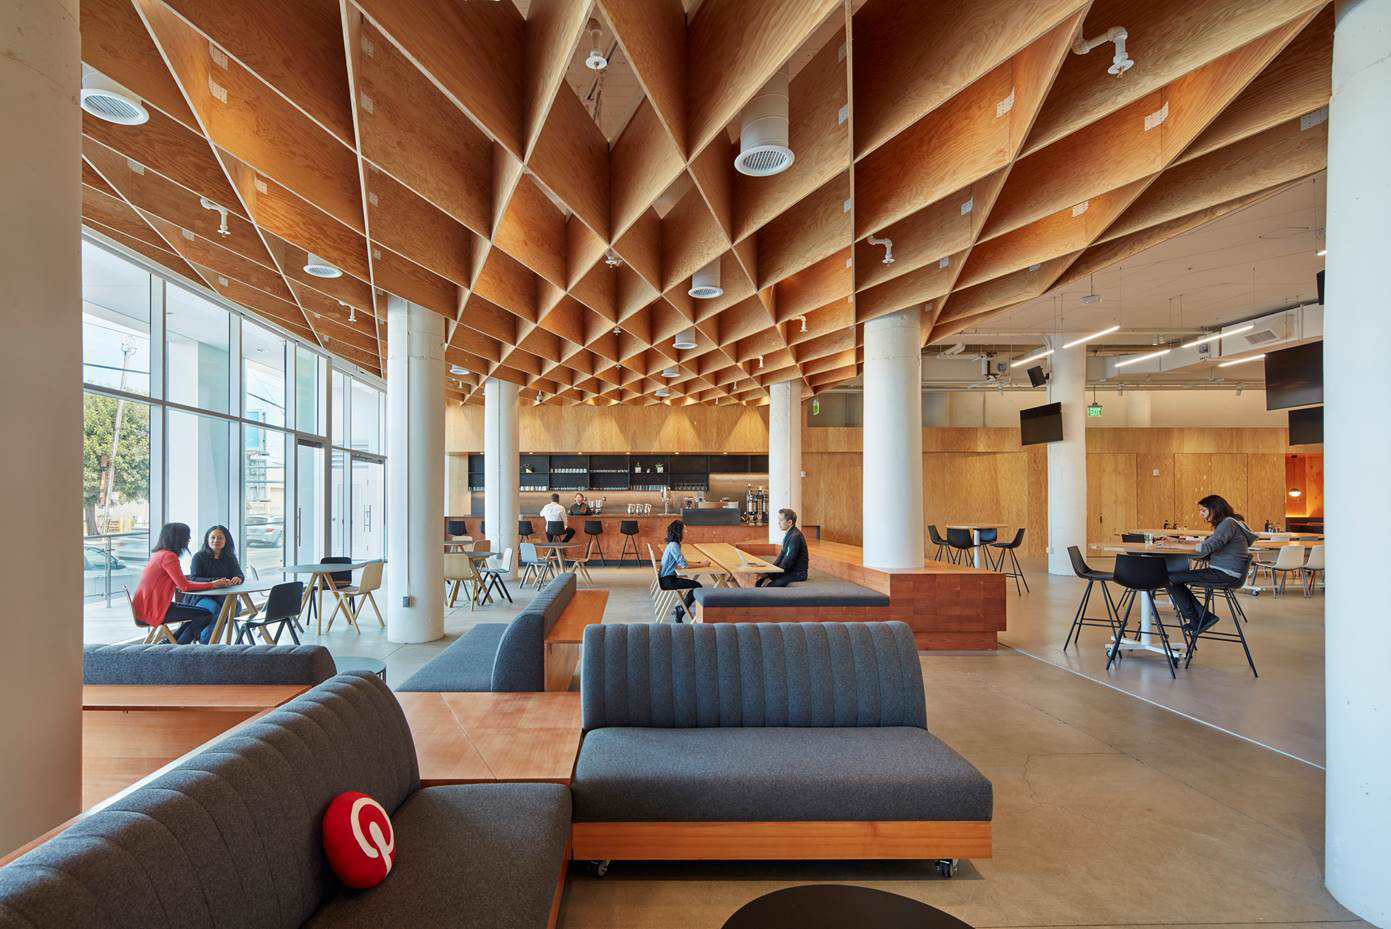 Pinterest 39 S New Architectural Headquarters In San Francisco Hypebeast